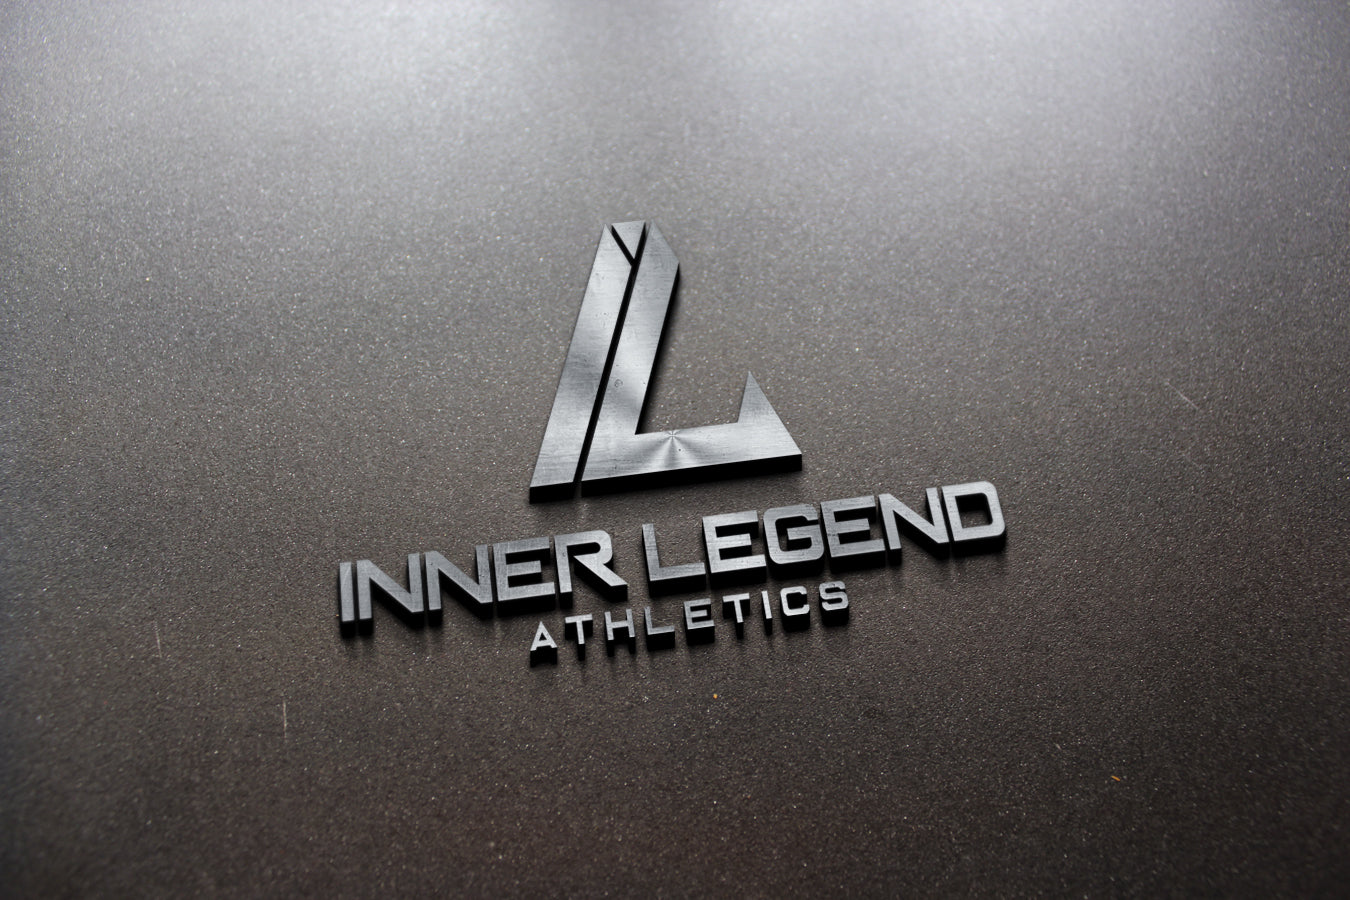 Inner Legend Athletics